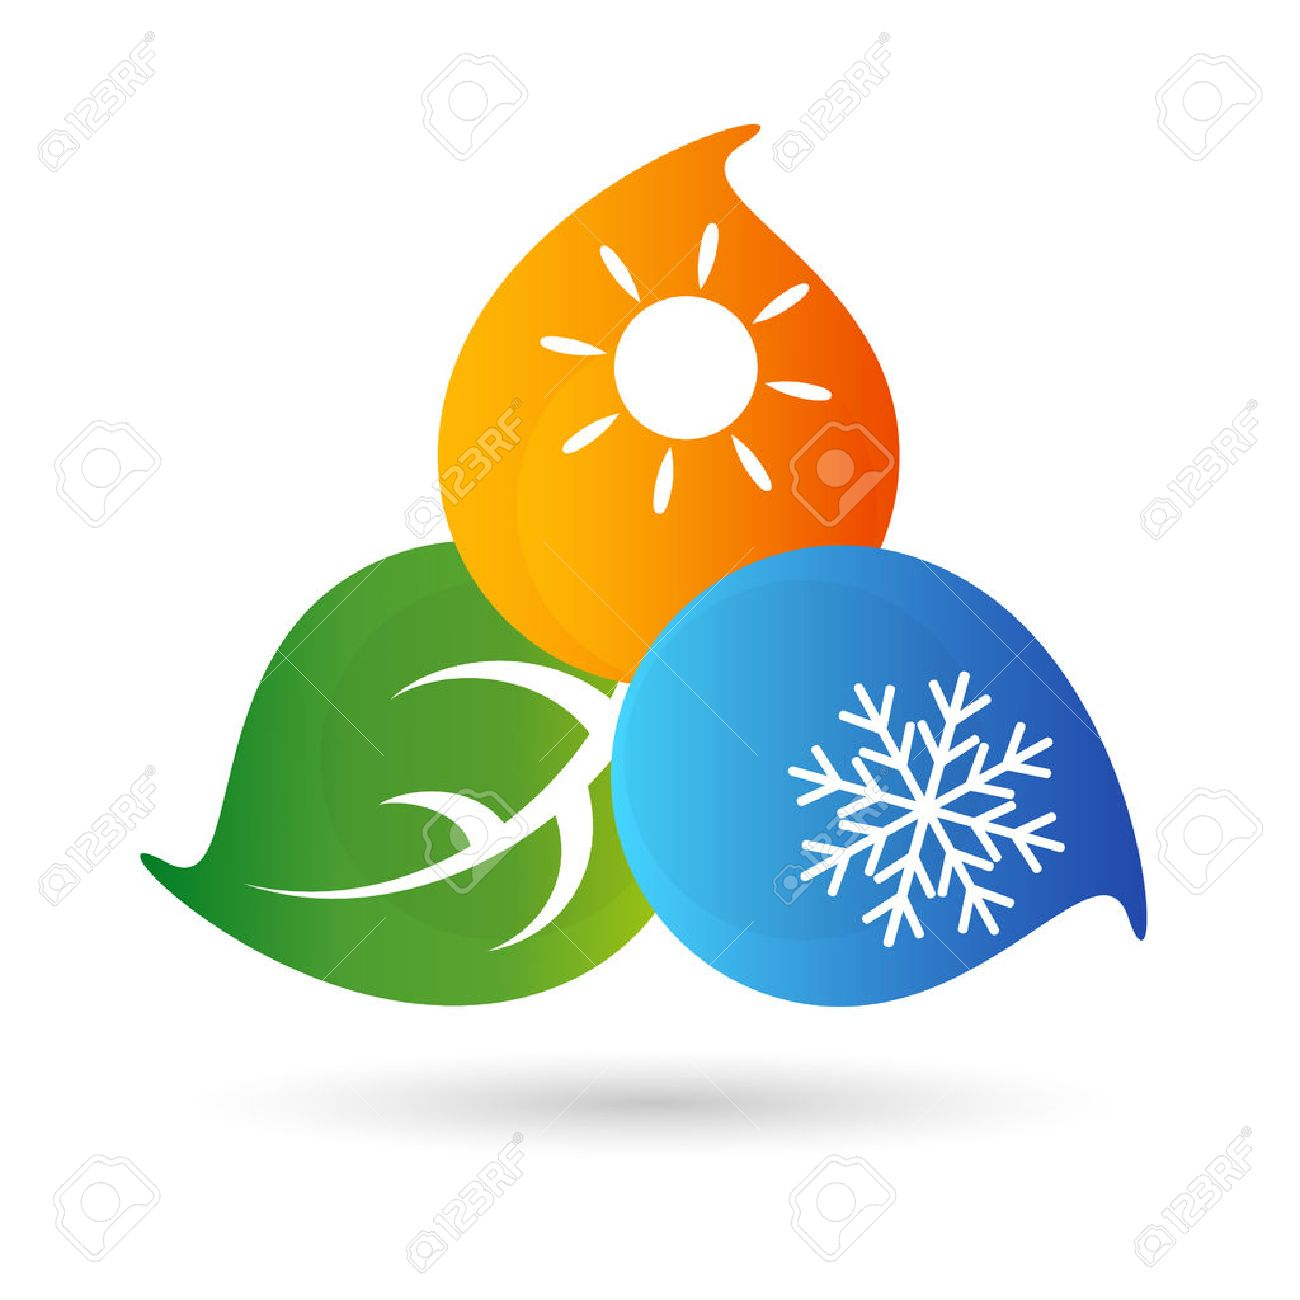 Air-conditioning environmental symbol for the vector - 45731902